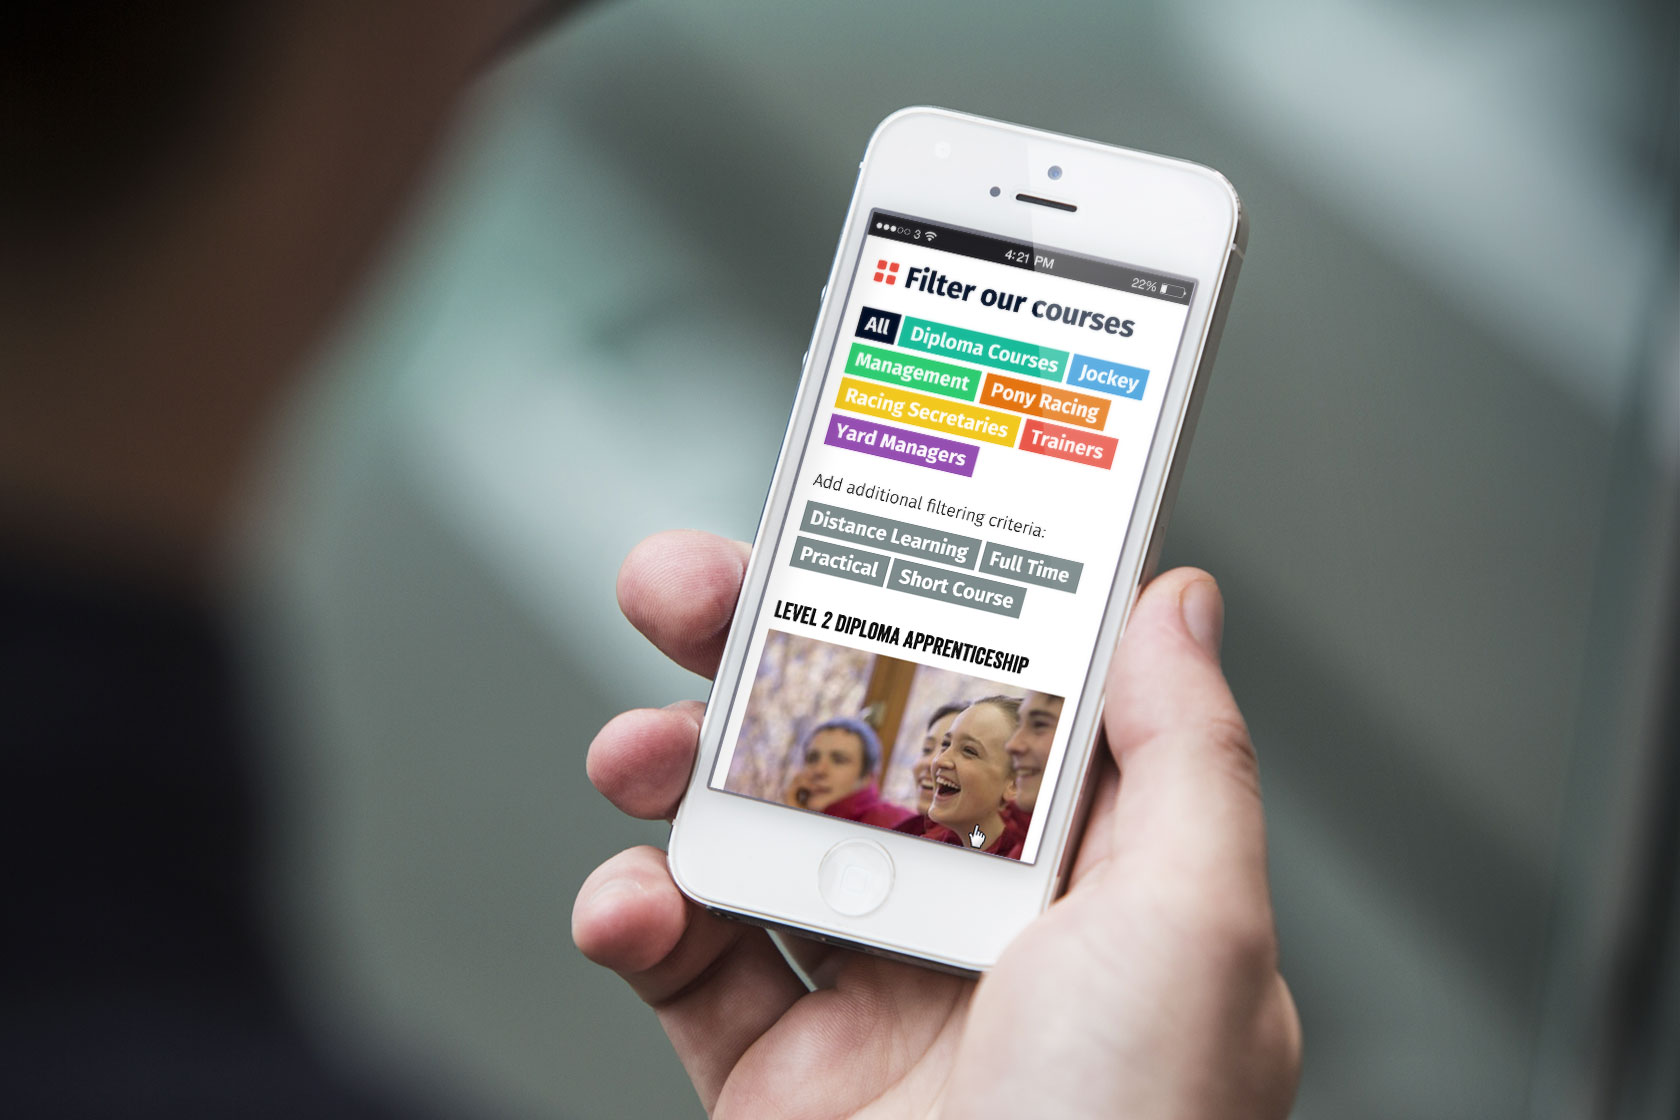 Regardless of the page content, the mobile site is quick and easy to use.